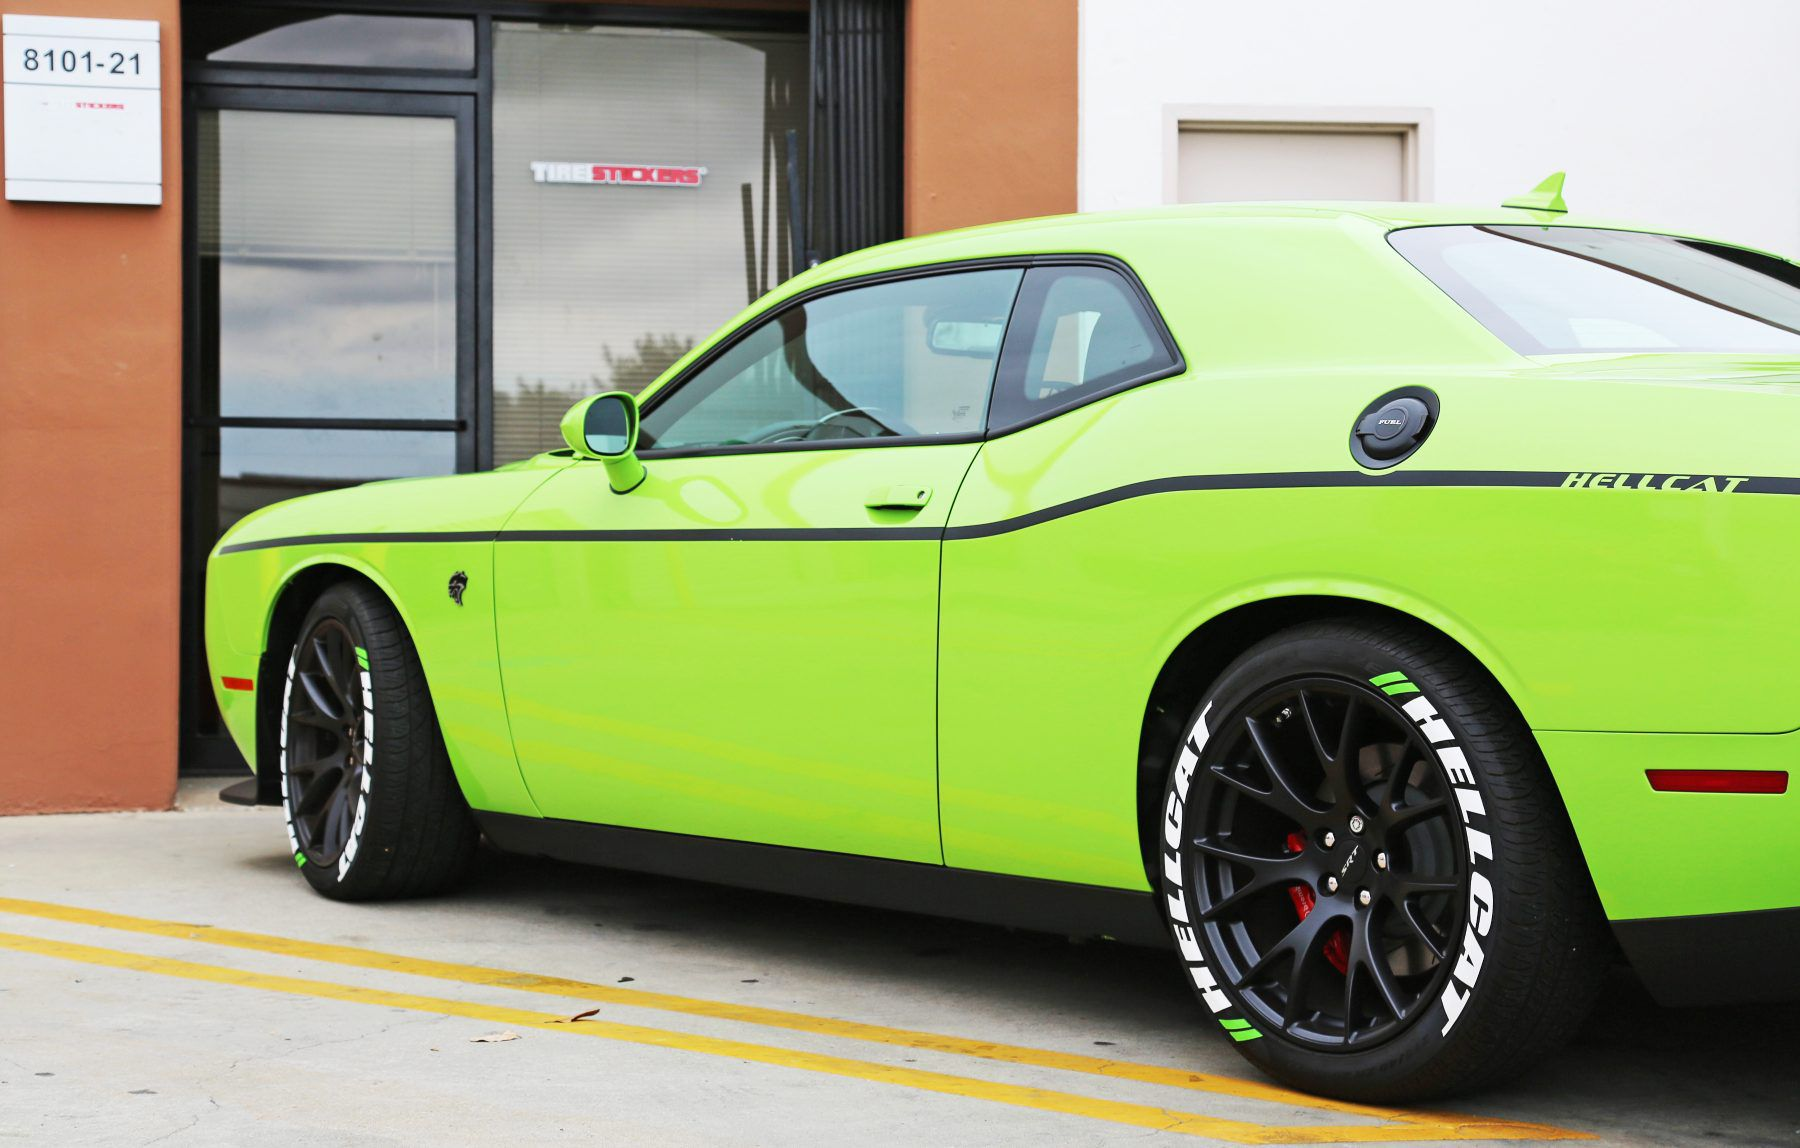 Dodge hellcat green tire stickers 1